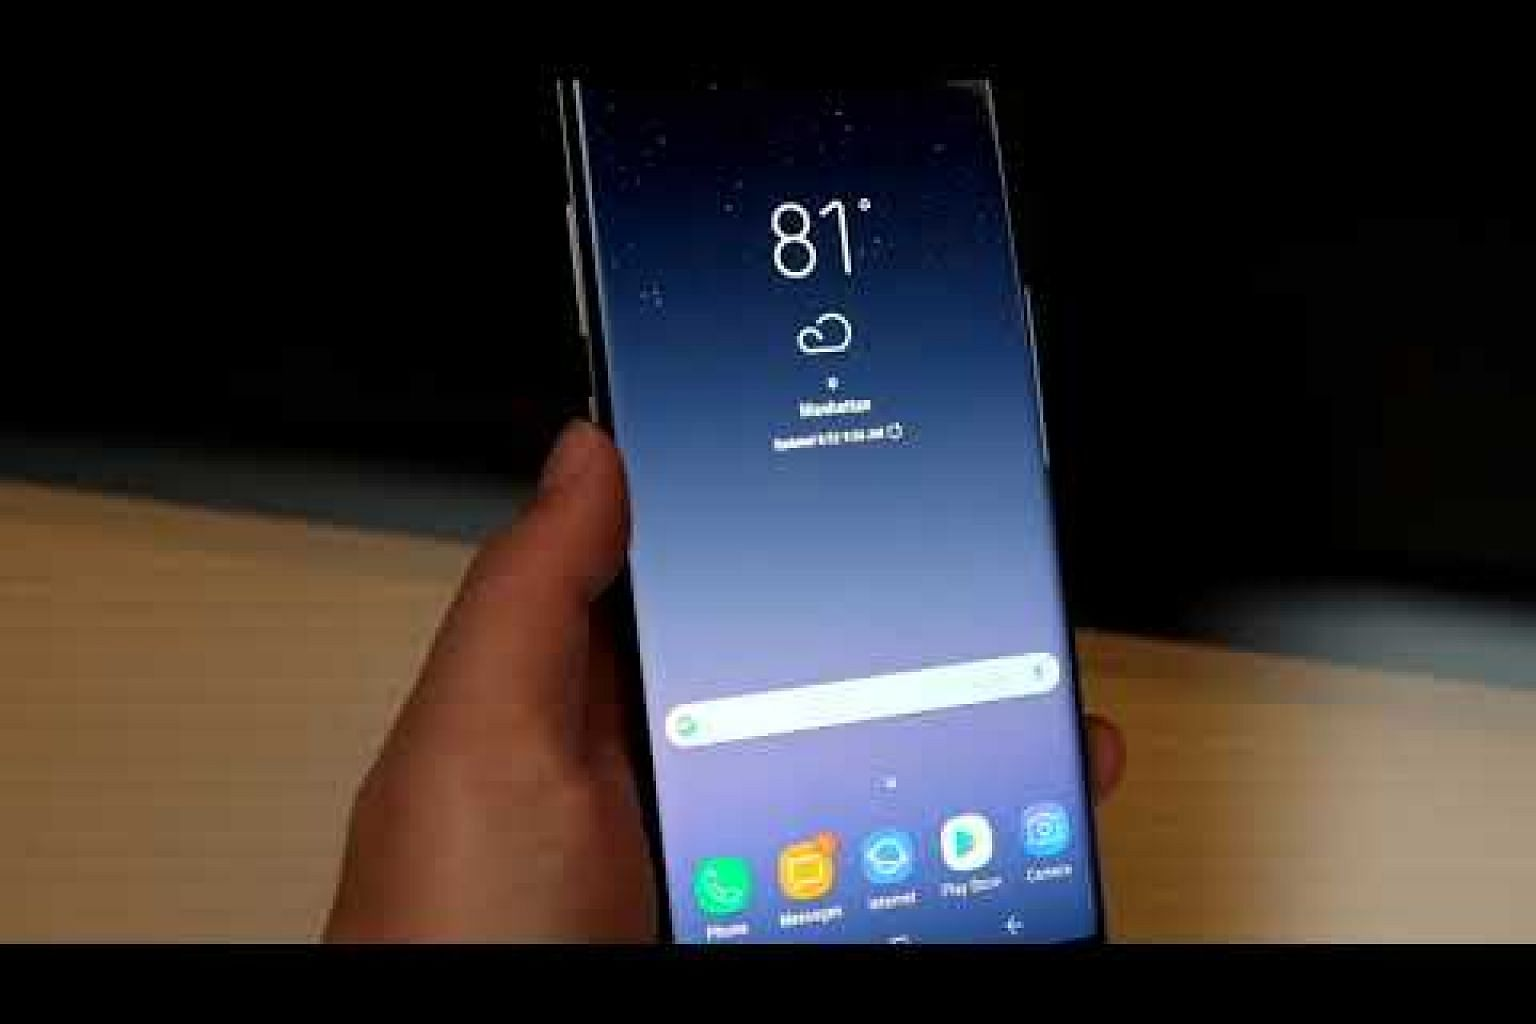 Samsung launches Galaxy Note8 phablet - first impressions